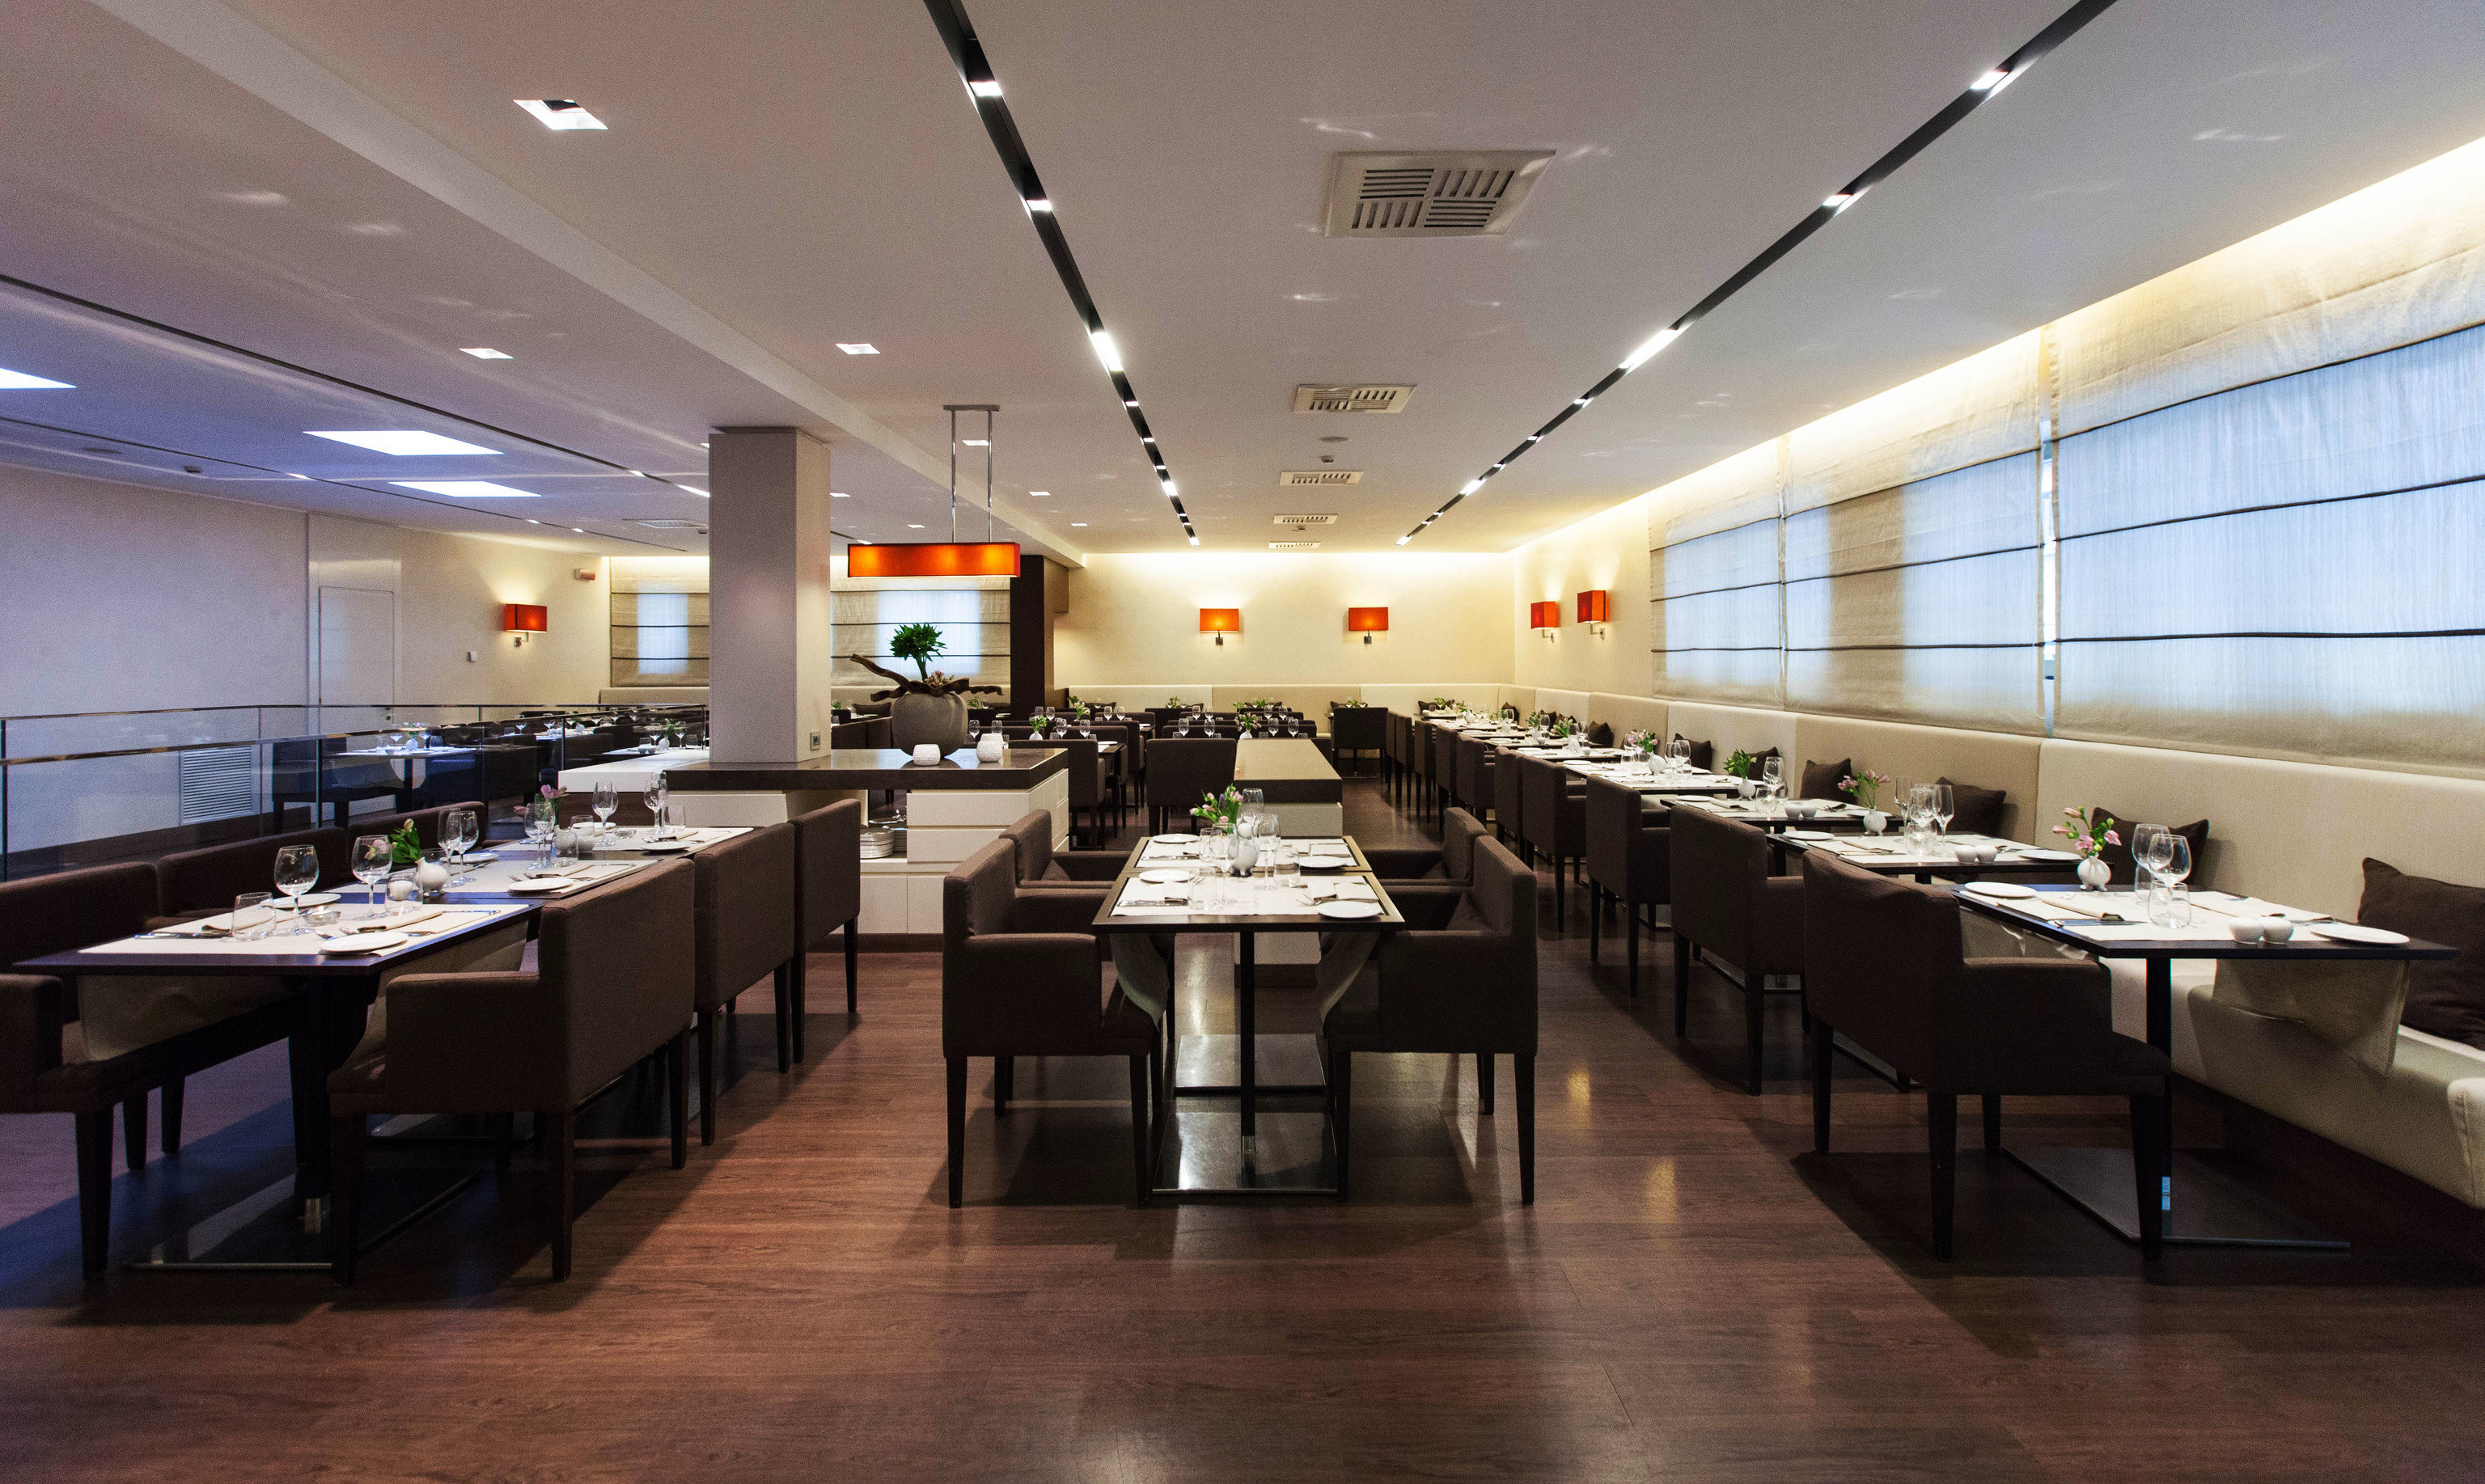 function hall restaurant conference hall cafeteria lighting convention center